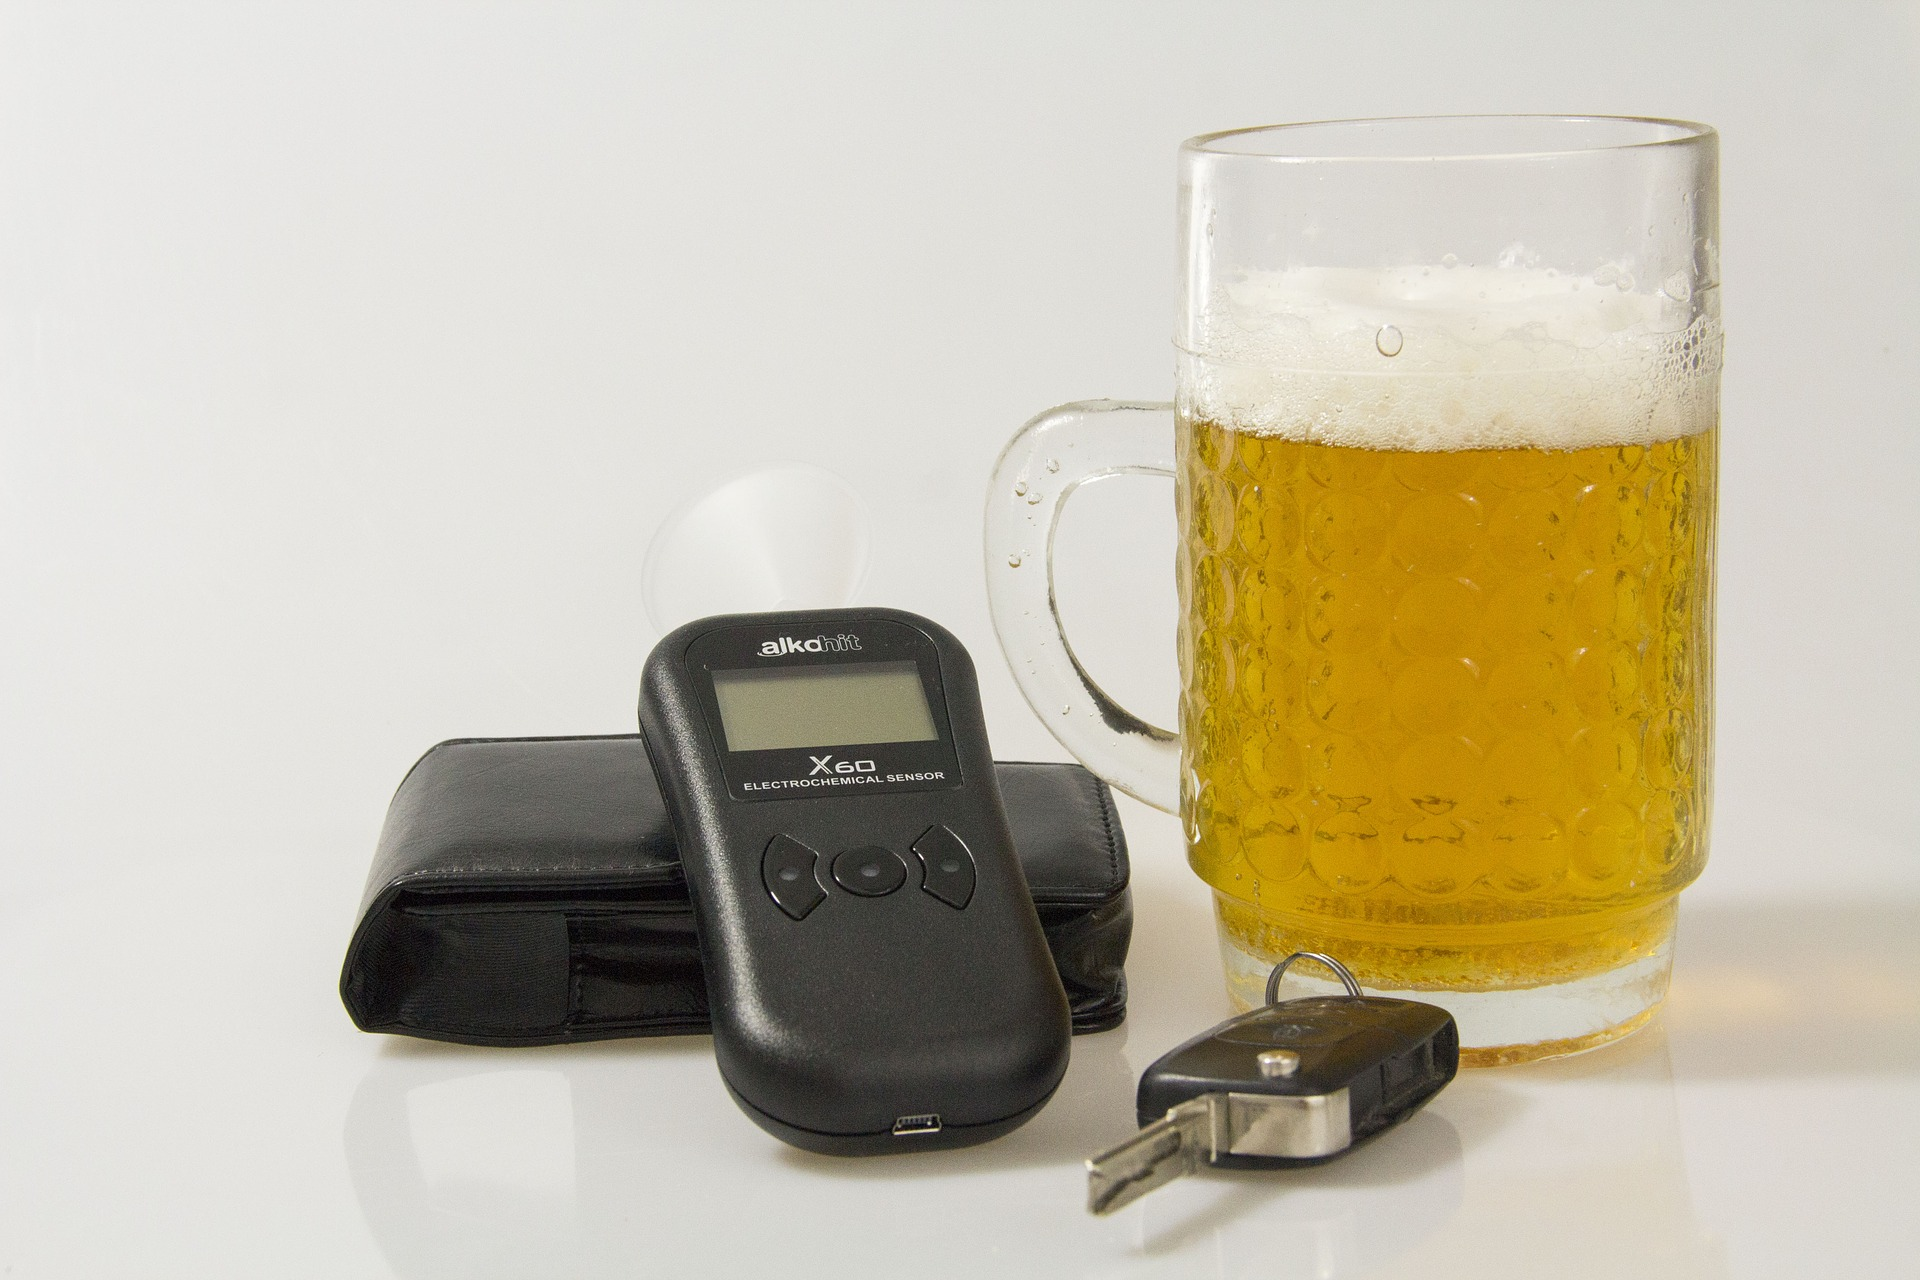 Ignition Interlock Devices in Florida